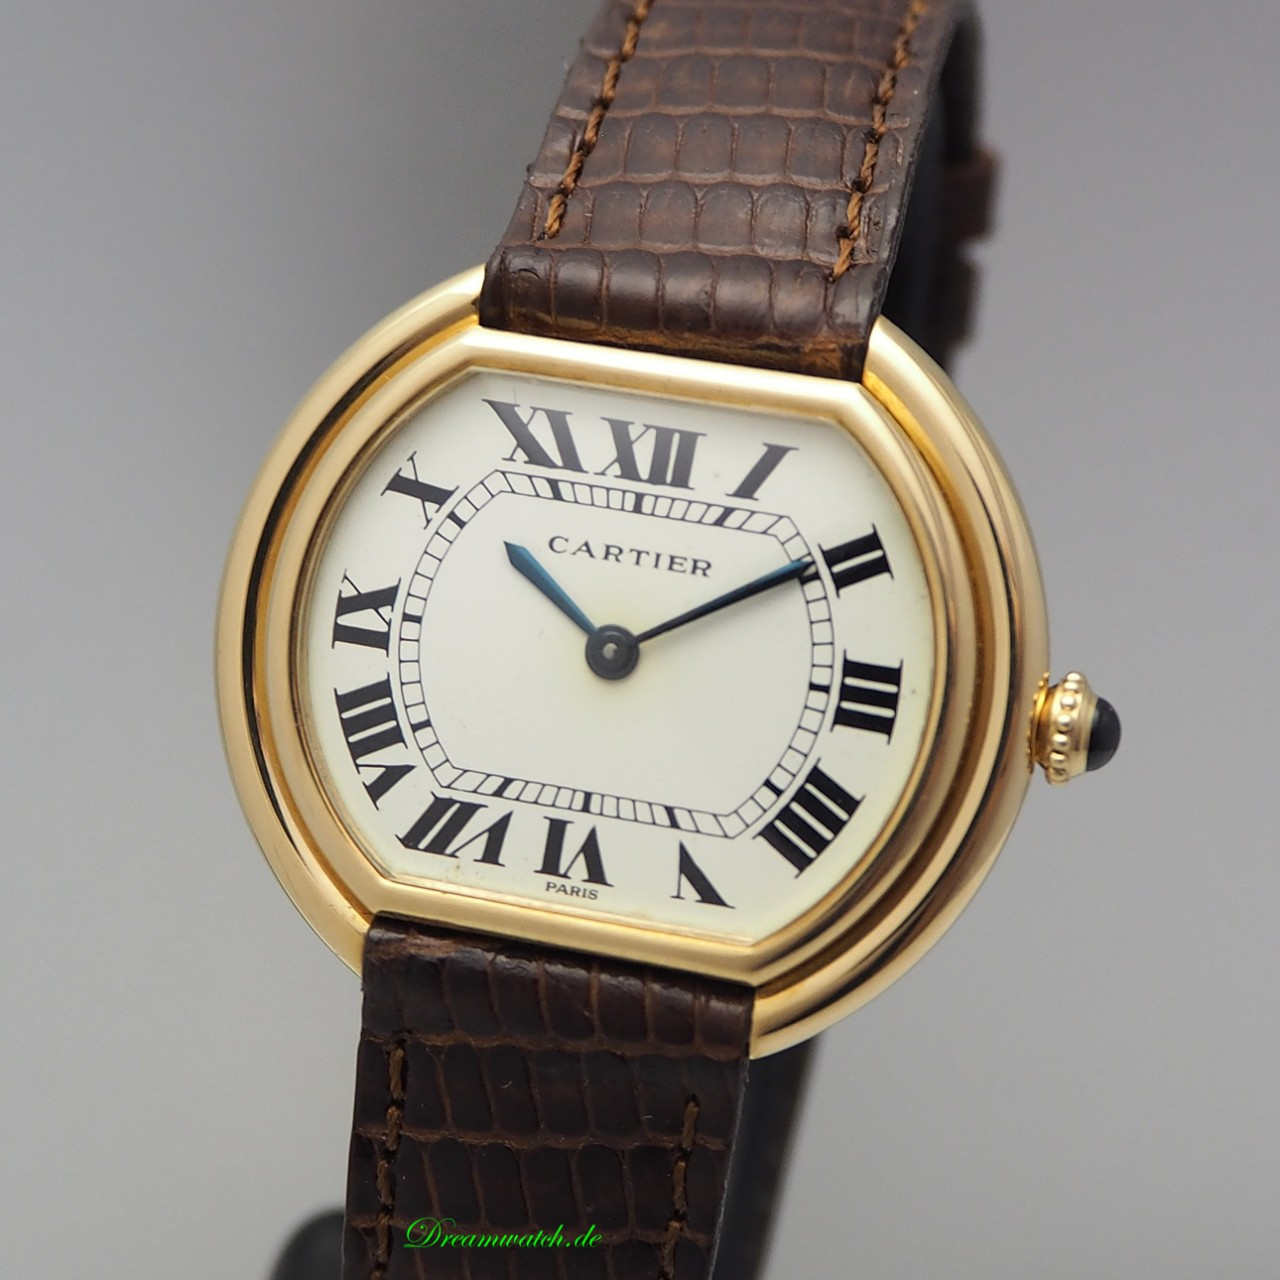 Cartier Paris Ellipse -Gold 18k/ Leder Handaufzug, B&P